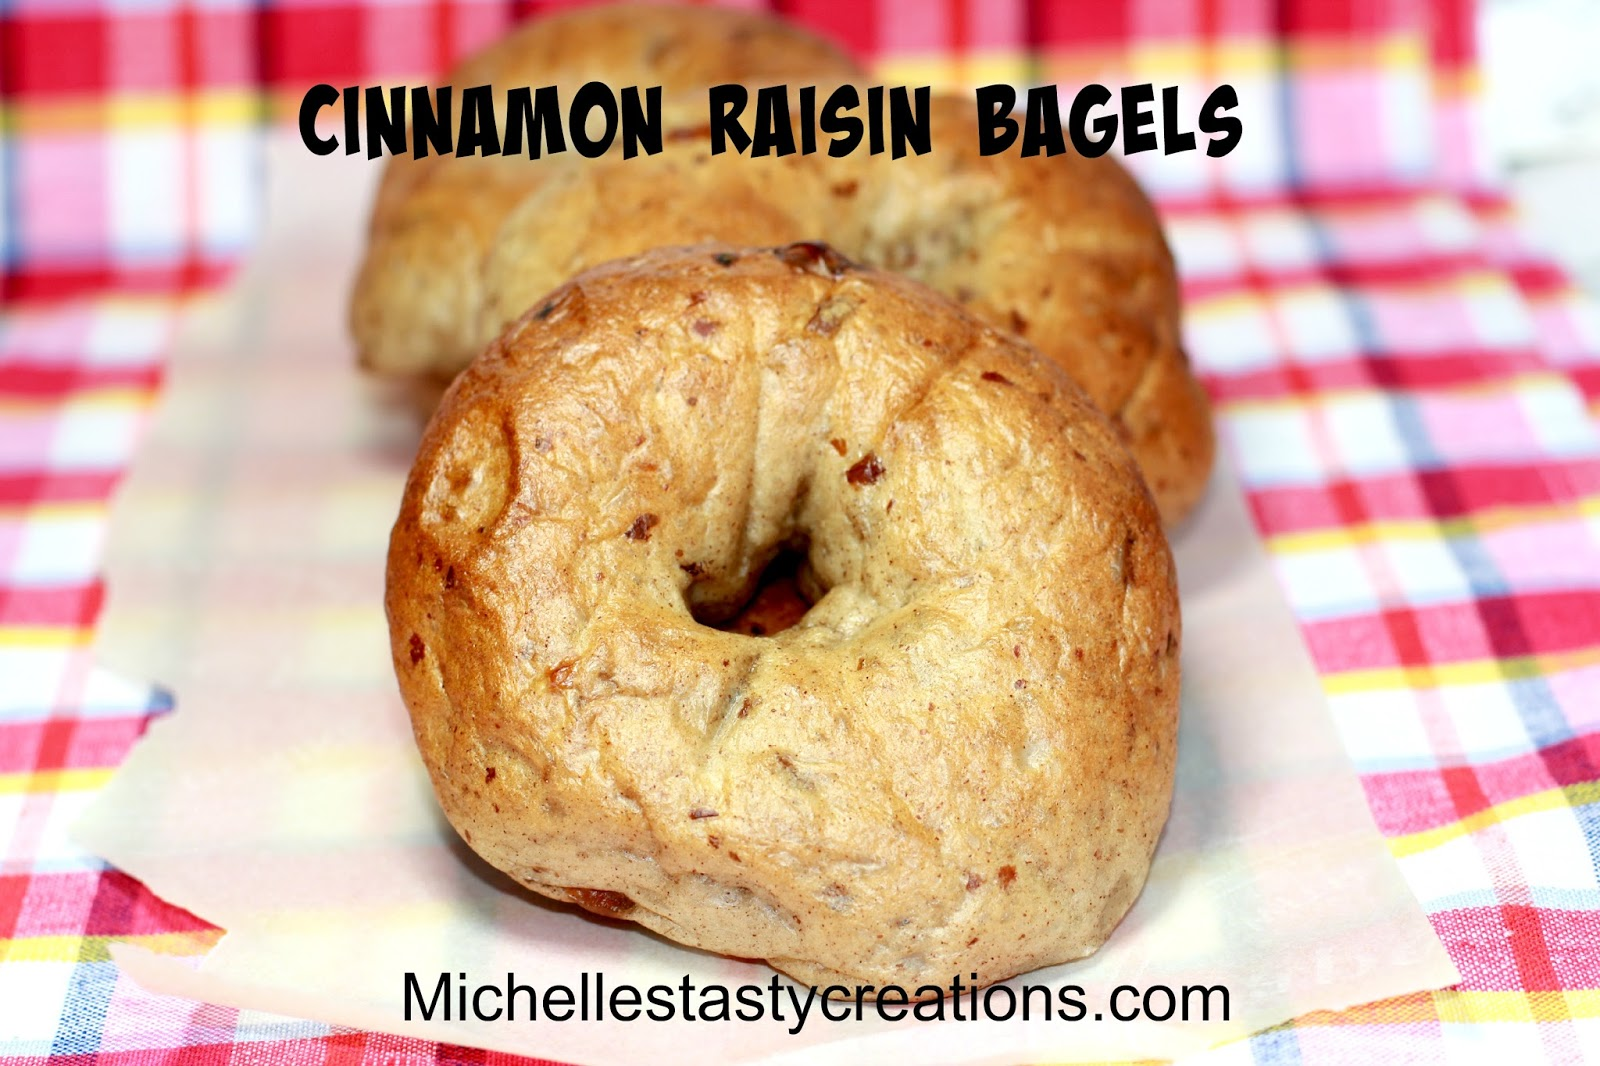 Michelle's Tasty Creations: Cinnamon Raisin Bagels